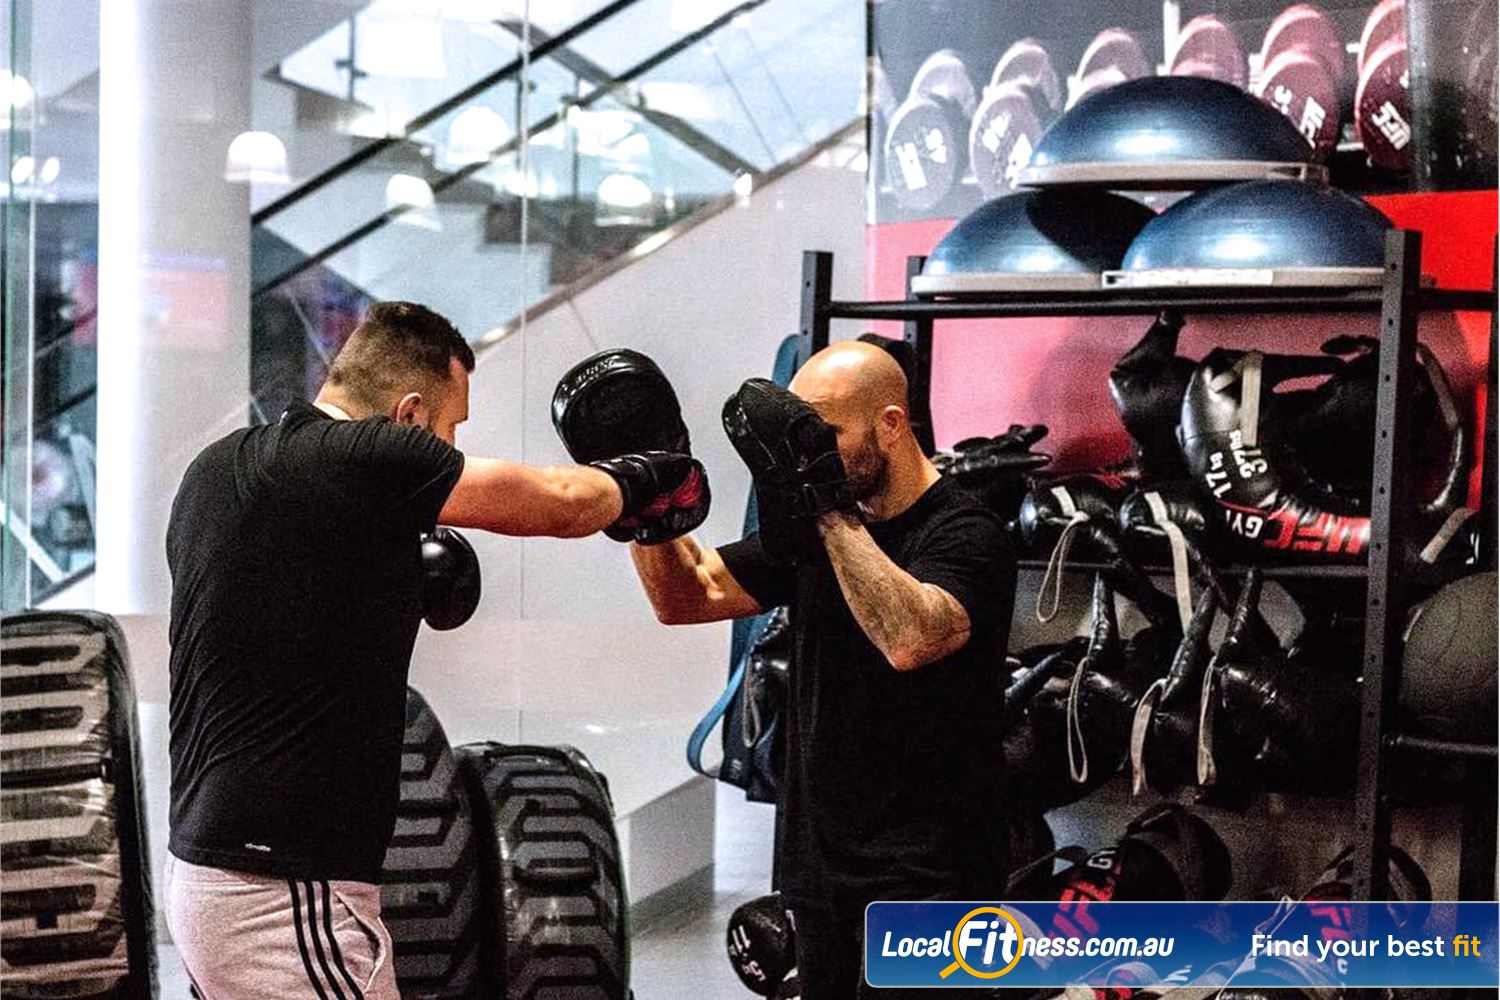 UFC Gym Blacktown Blacktown personal training is a great way to refine your boxing skills.